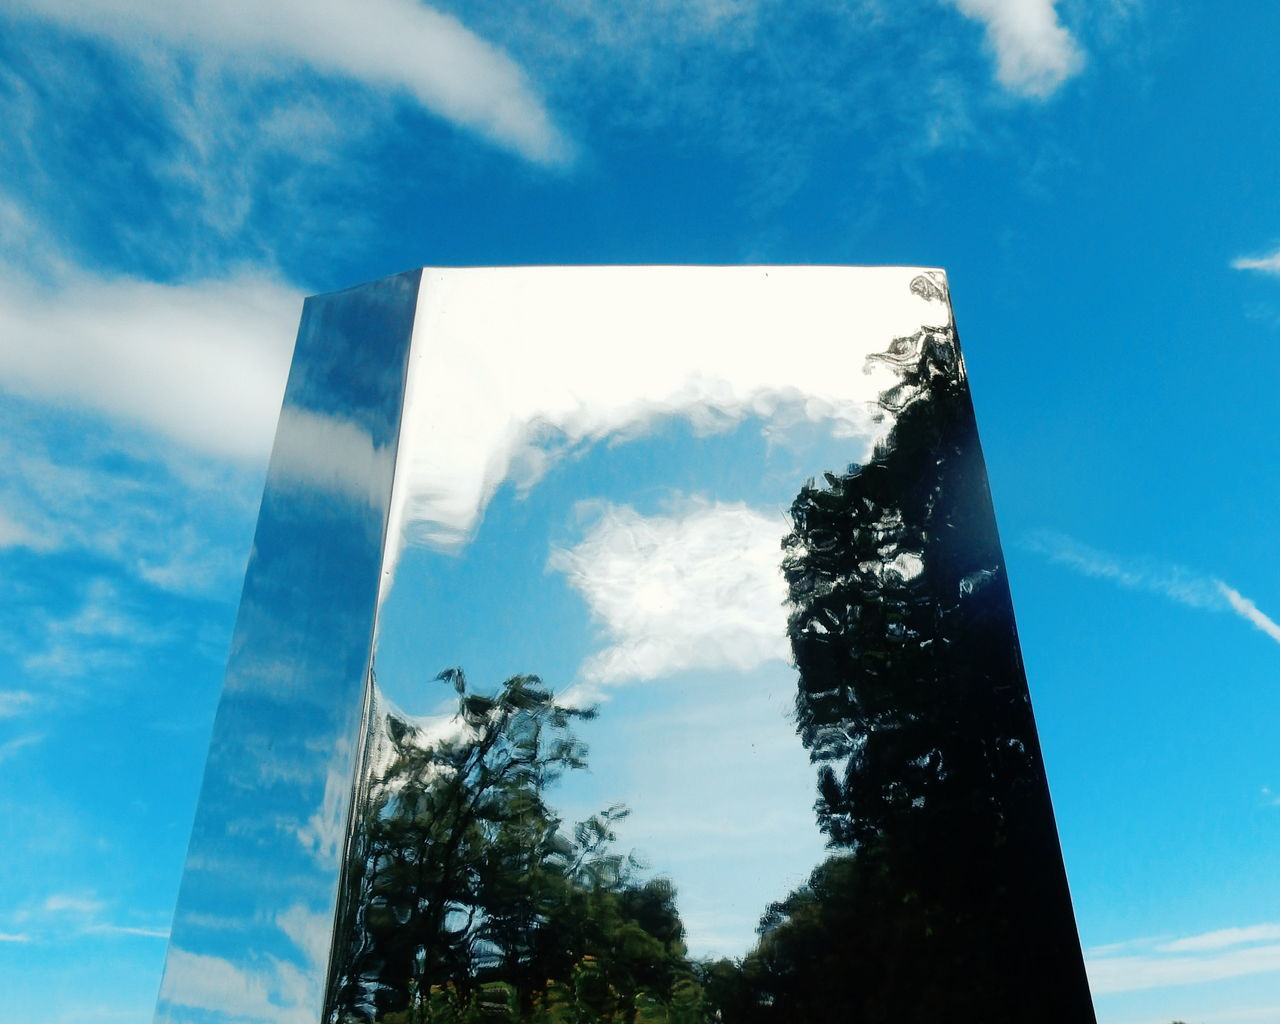 Art ArtWork Sculpture Albyfriluftsområde Alby  Norway Reflection Reflections Reflection_collection Glass Sky Sky And Clouds Blue Sky Reflecting Adapted To The City Art Is Everywhere